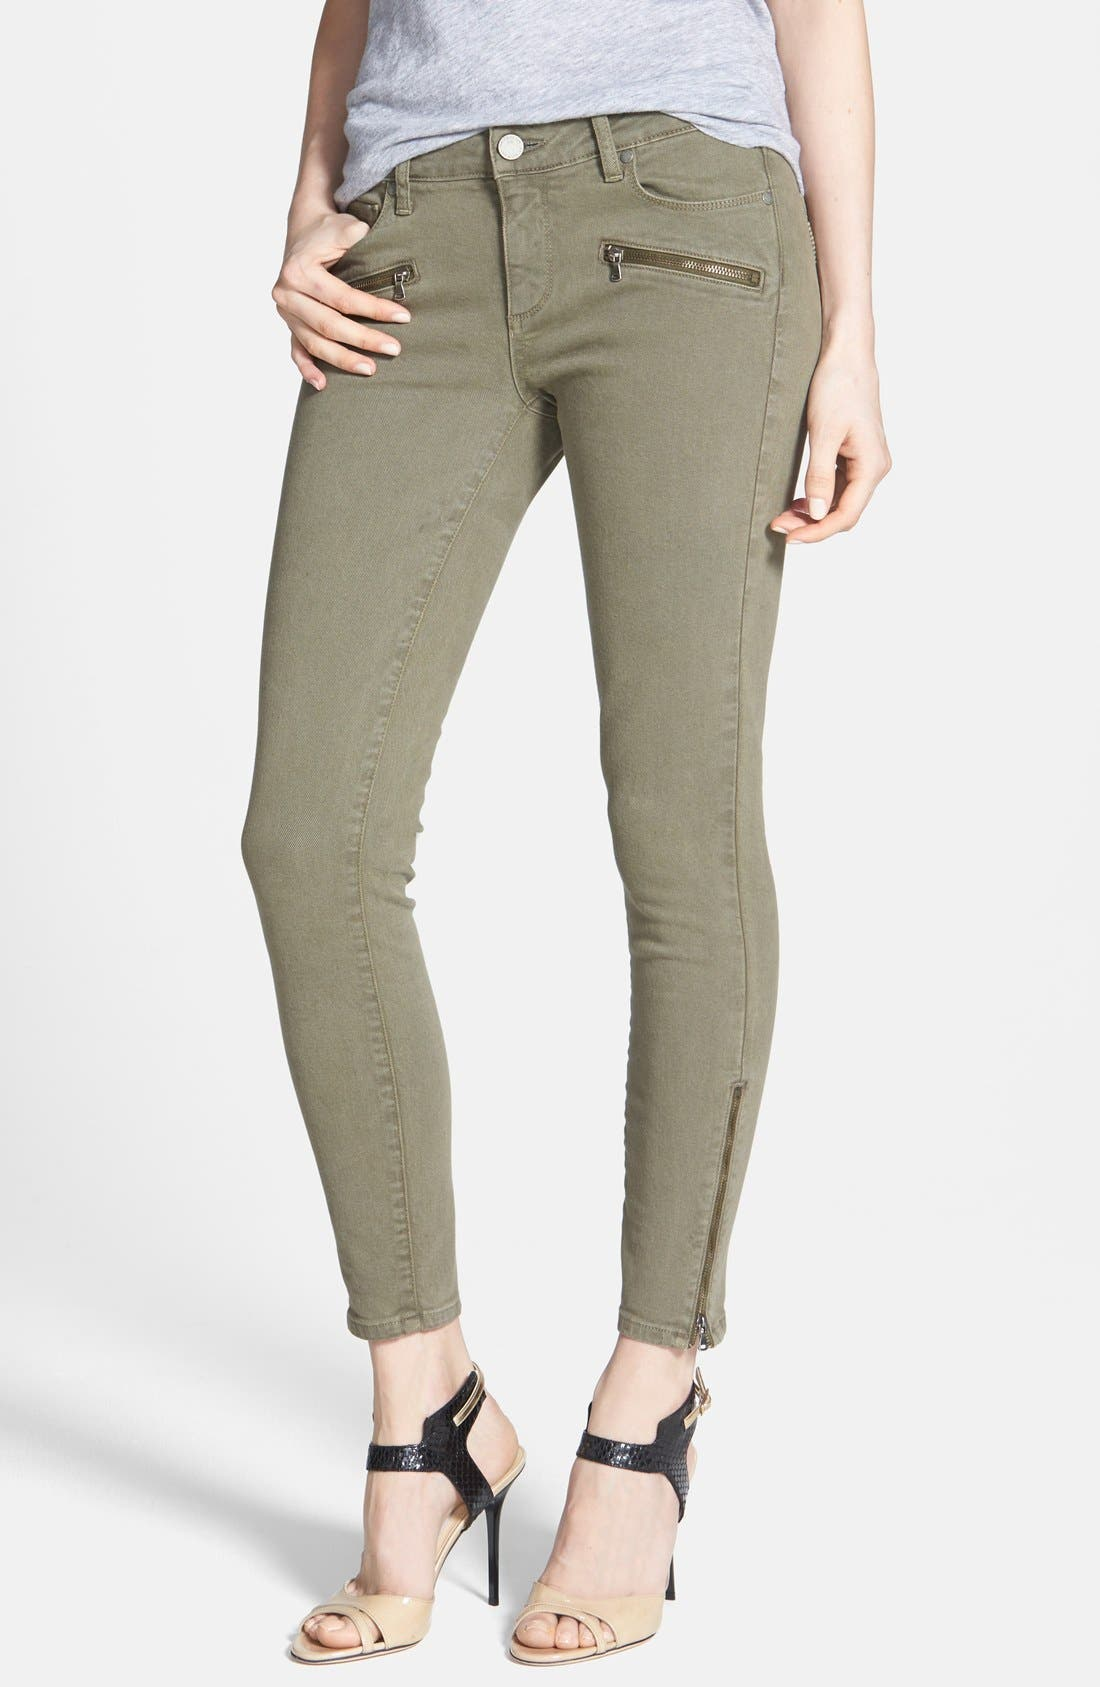 Alternate Image 1 Selected - Paige Denim 'Jane' Zip Detail Ultra Skinny Ankle Jeans (Fatigue Green)